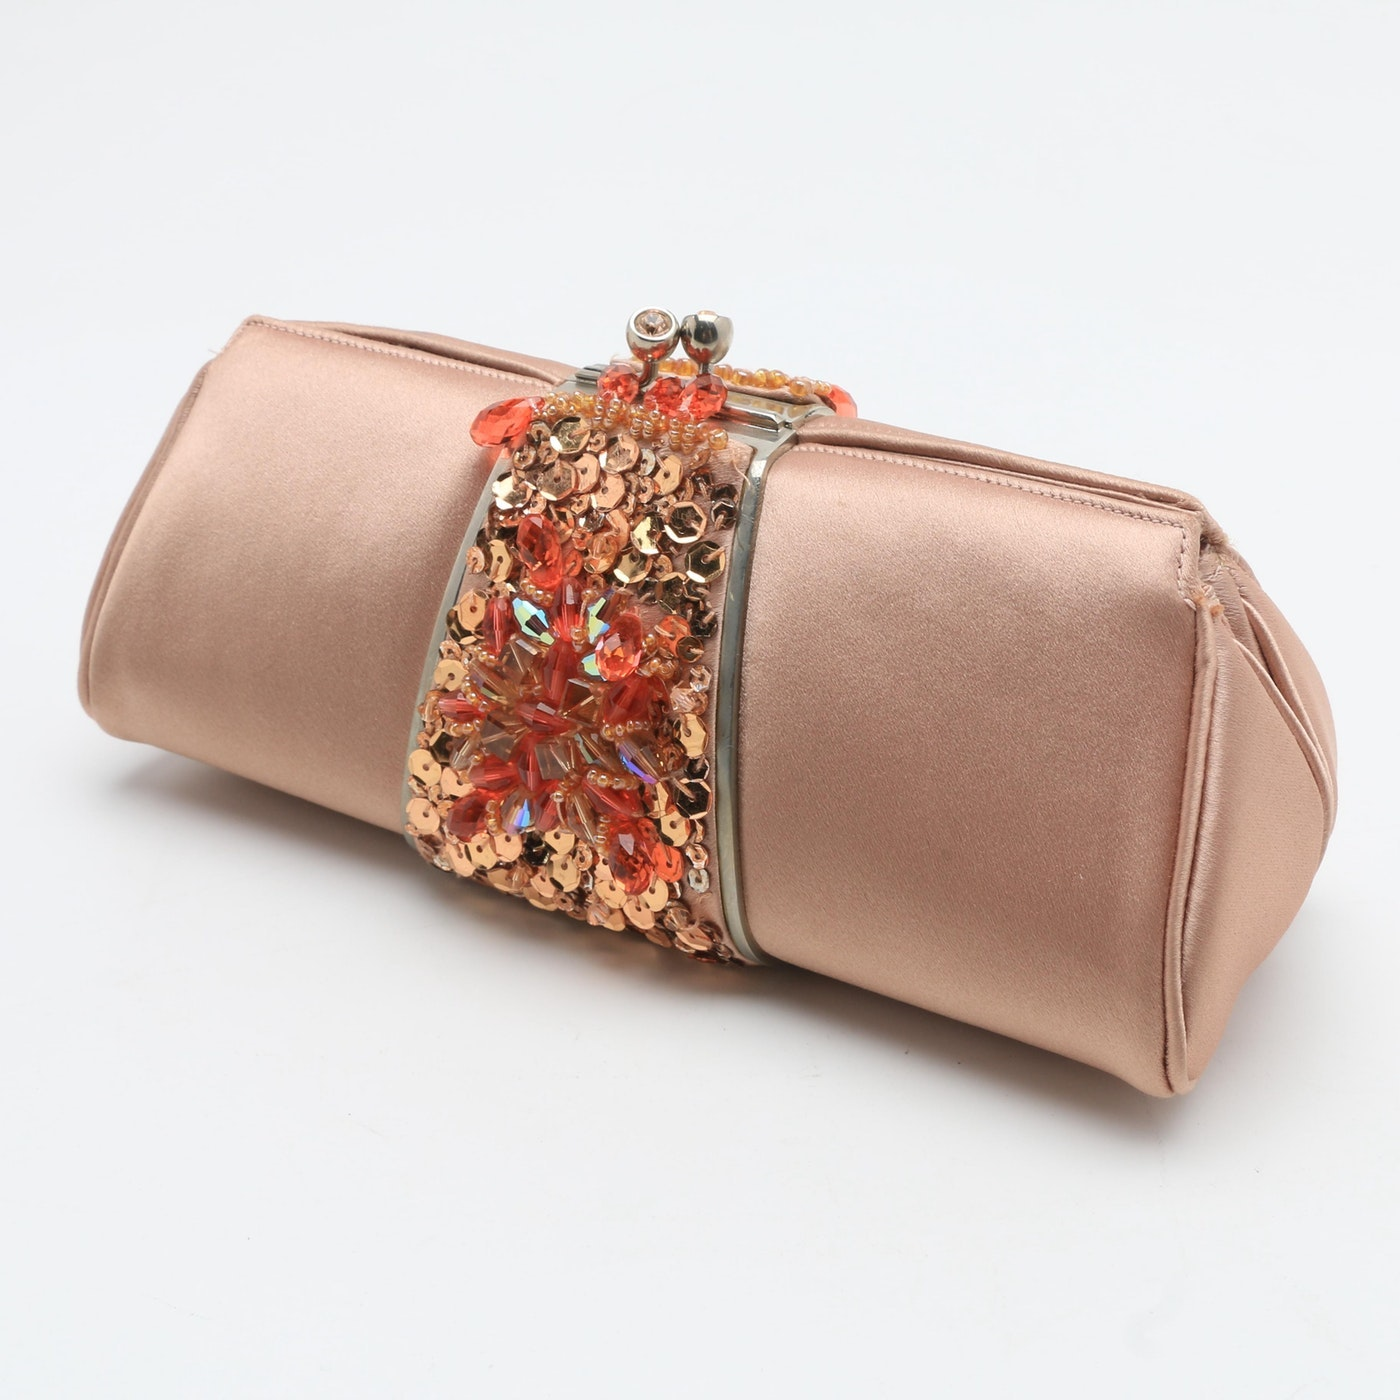 Judith Leiber Dusky Pink Satin Beaded Evening Clutch